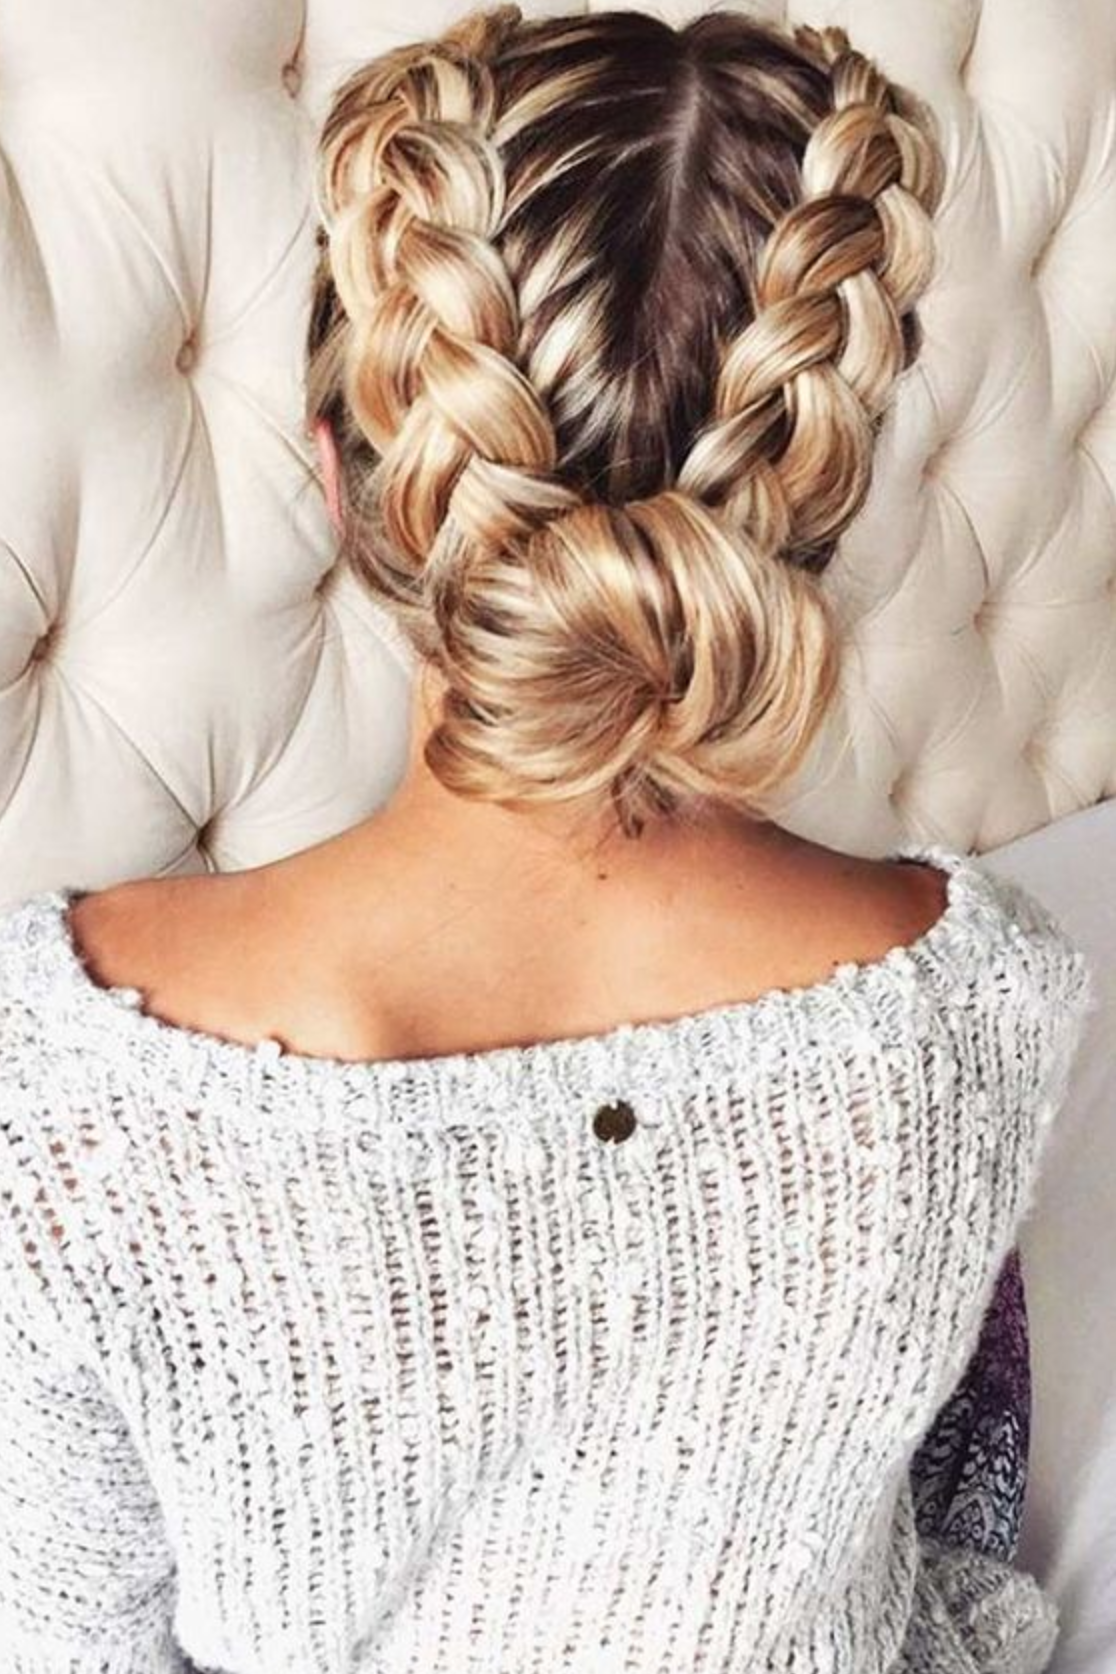 50 Amazin Braid Hairstyle Ideas Of Party And Holidays 2019 Long Hair Styles Hairstyle Hair